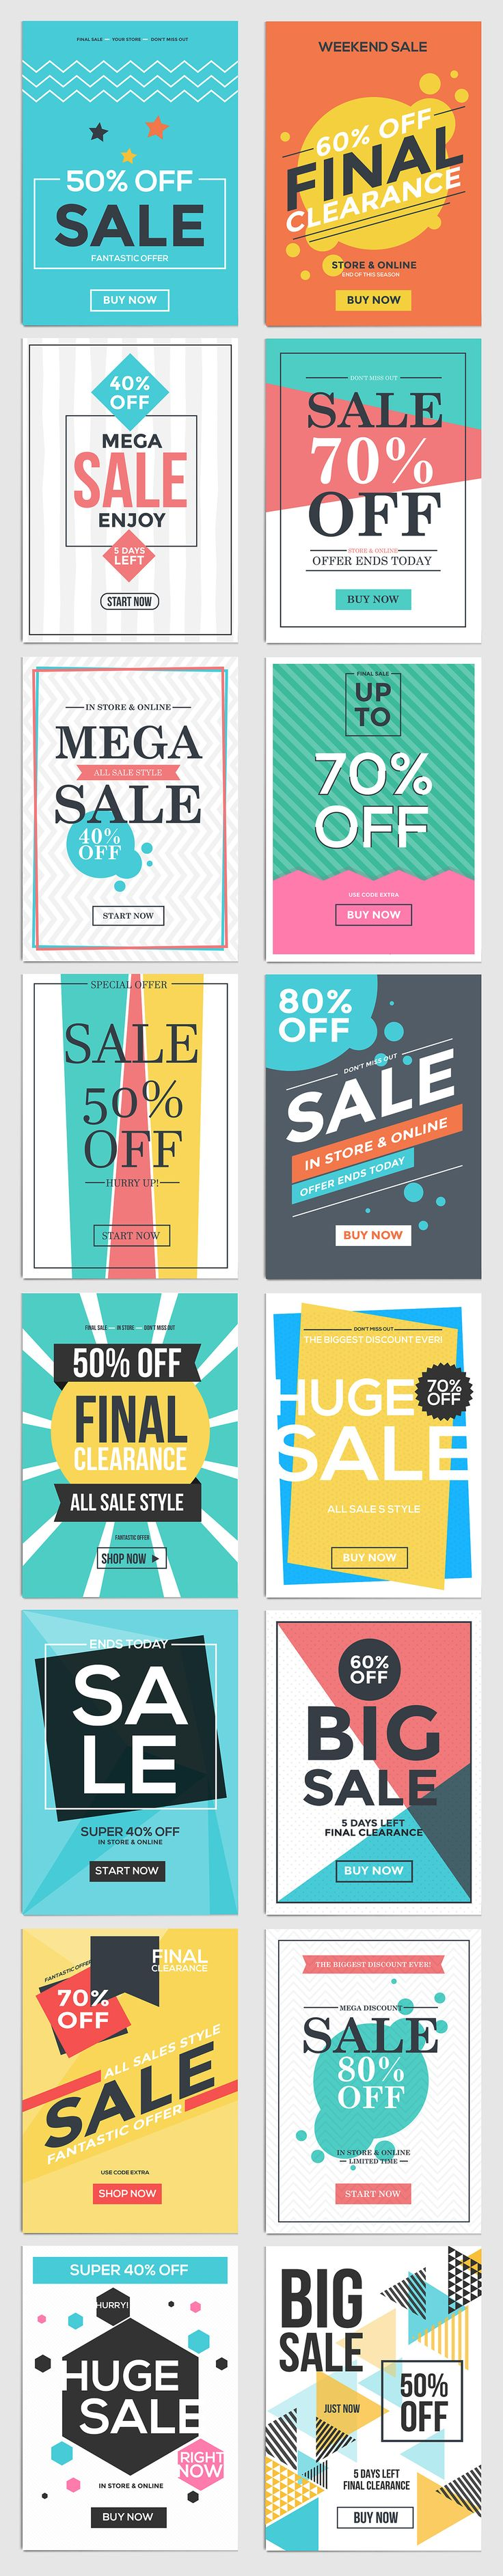 Poster 60 x 80 design - Poster 60 X 80 Design Flat Design Sale Flyer Templates Download